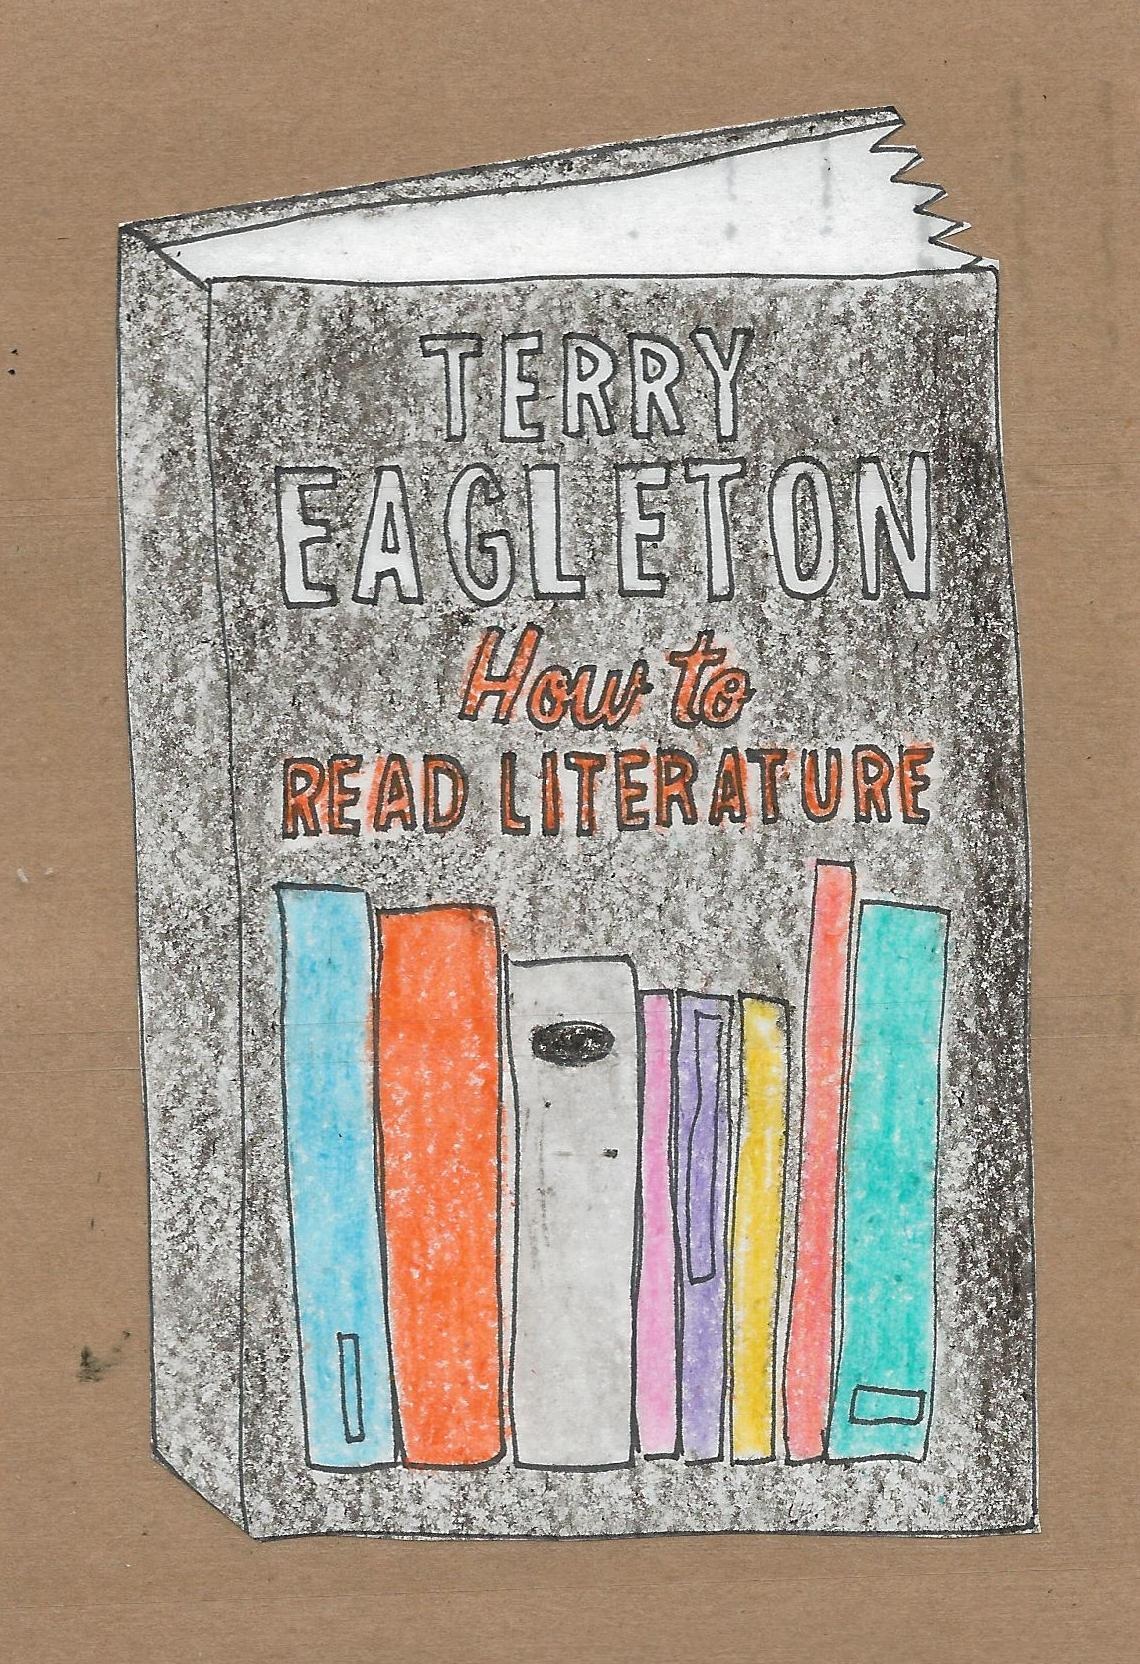 jennwitte:  How to Read Literature, Terry Eagleton